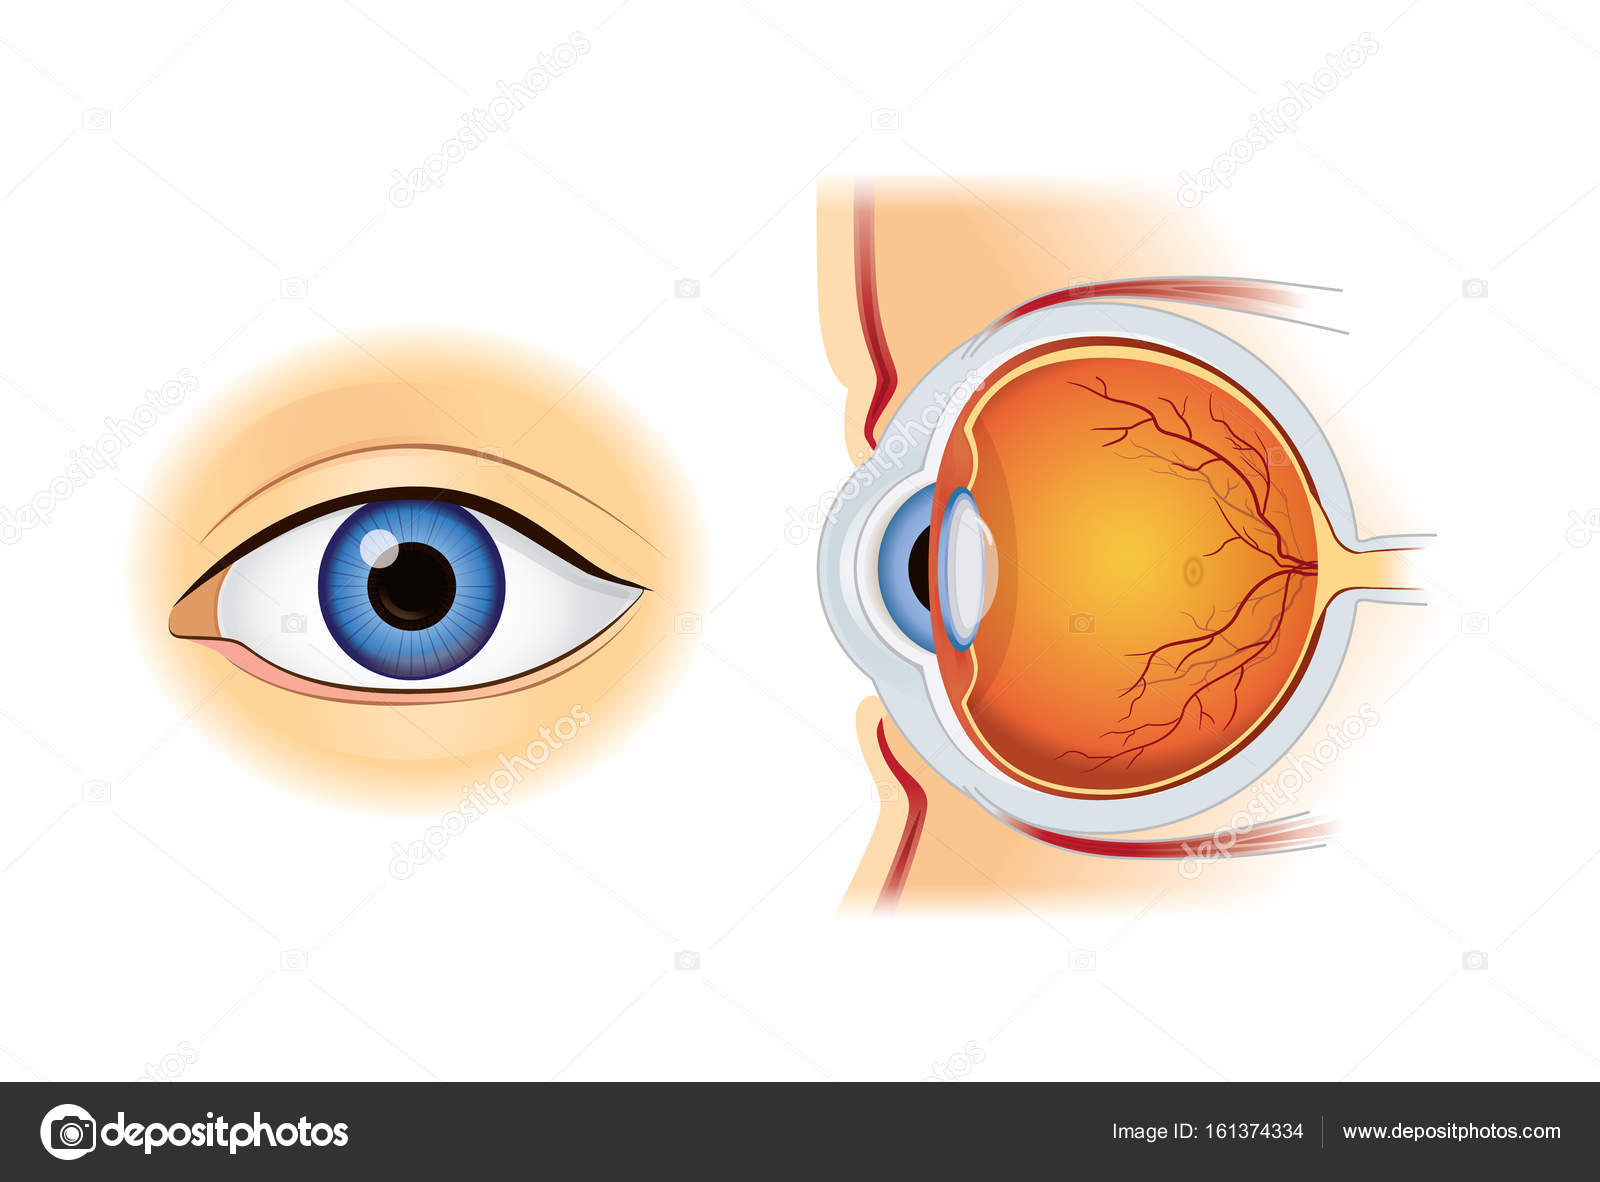 Human eye anatomy in inside and out side view stock vector human eye anatomy in inside and out side view isolated on white illustration about medical and science vector by solar22 ccuart Choice Image